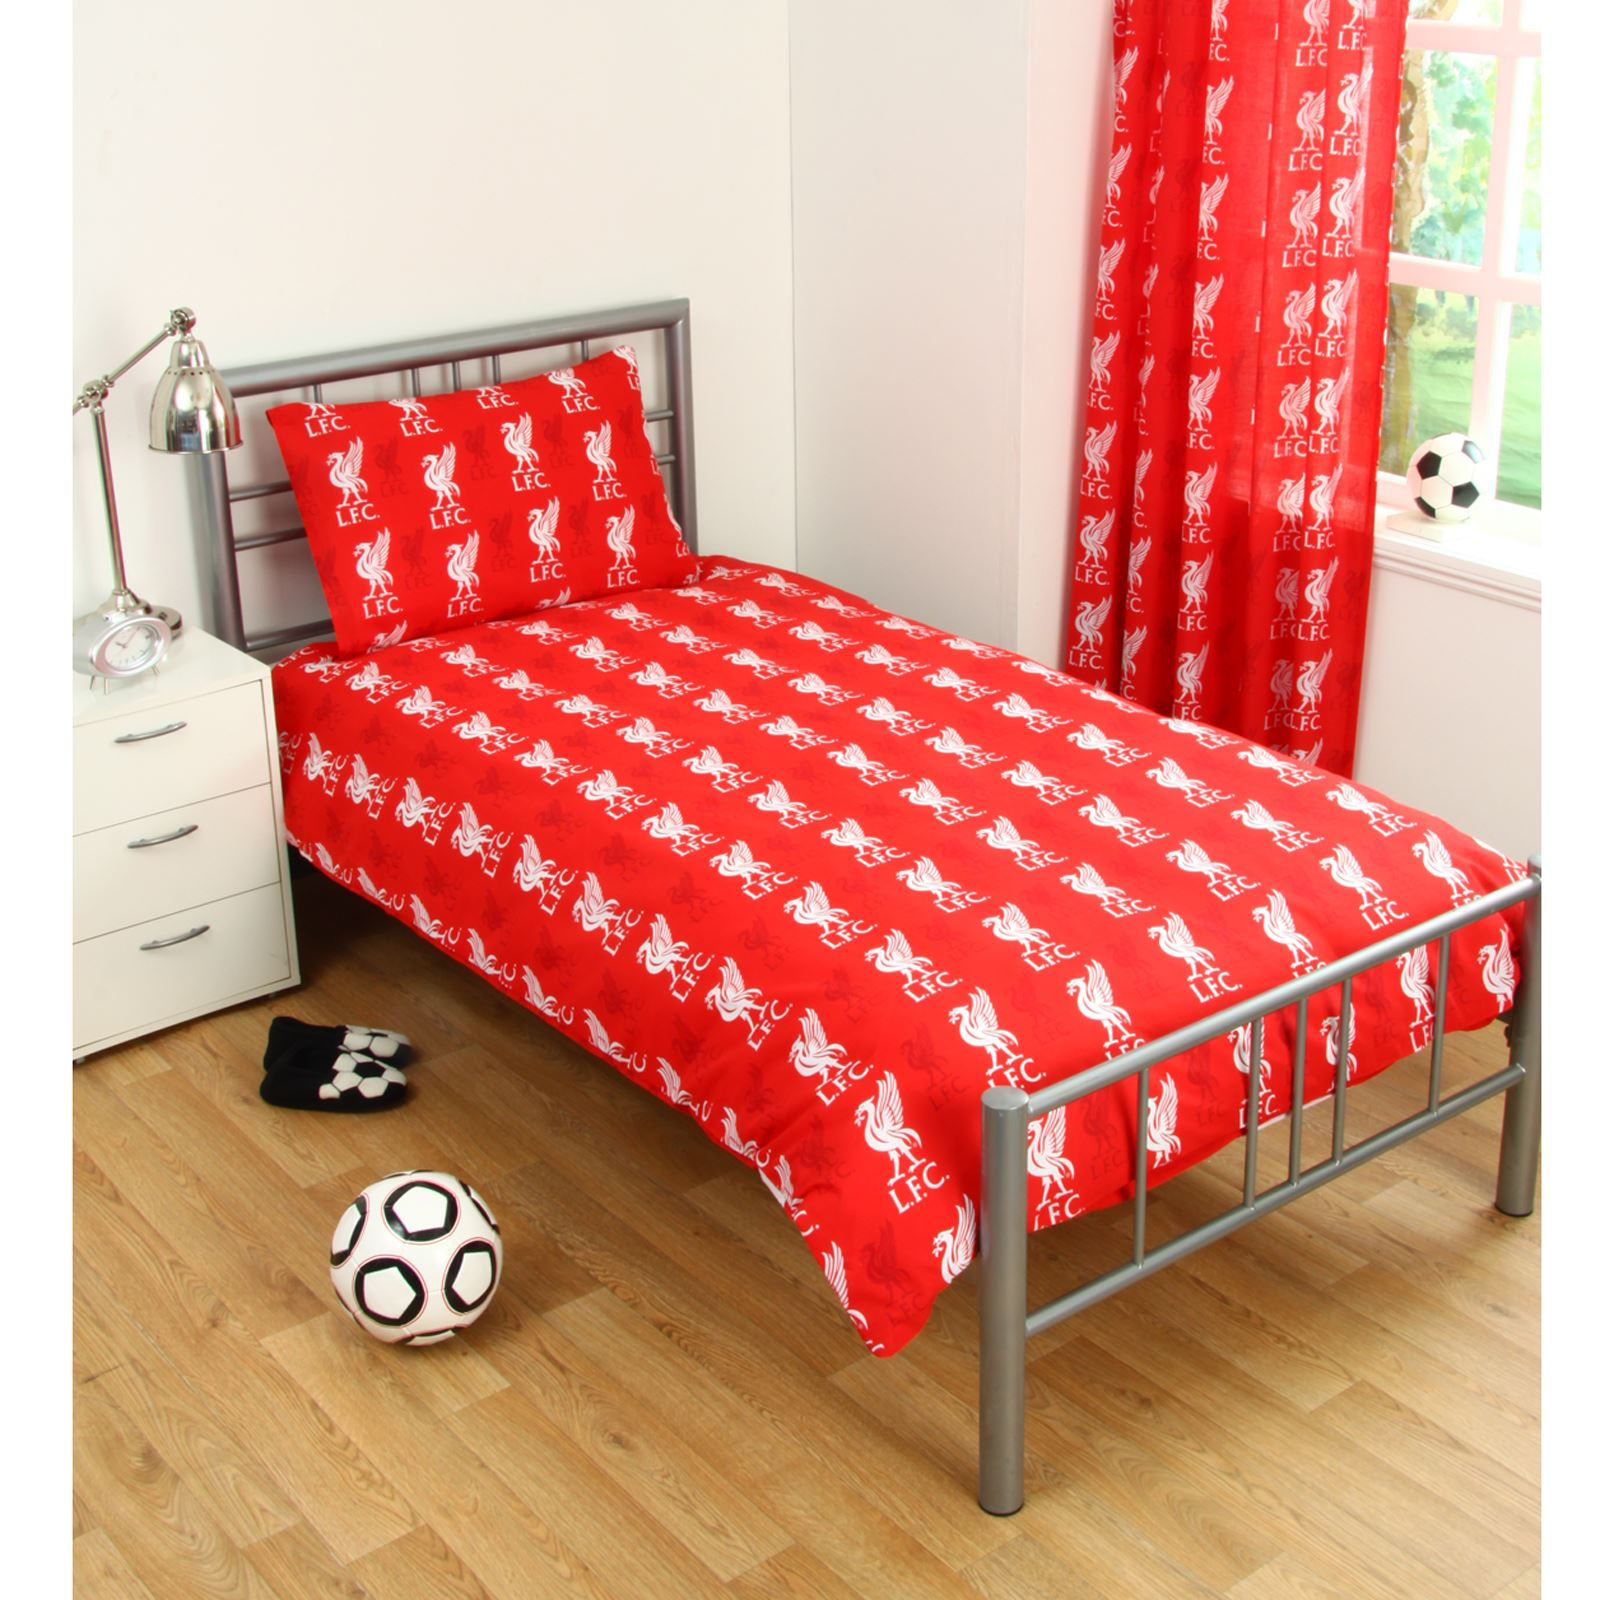 Single Football Duvet Cover Bedding Sets Official